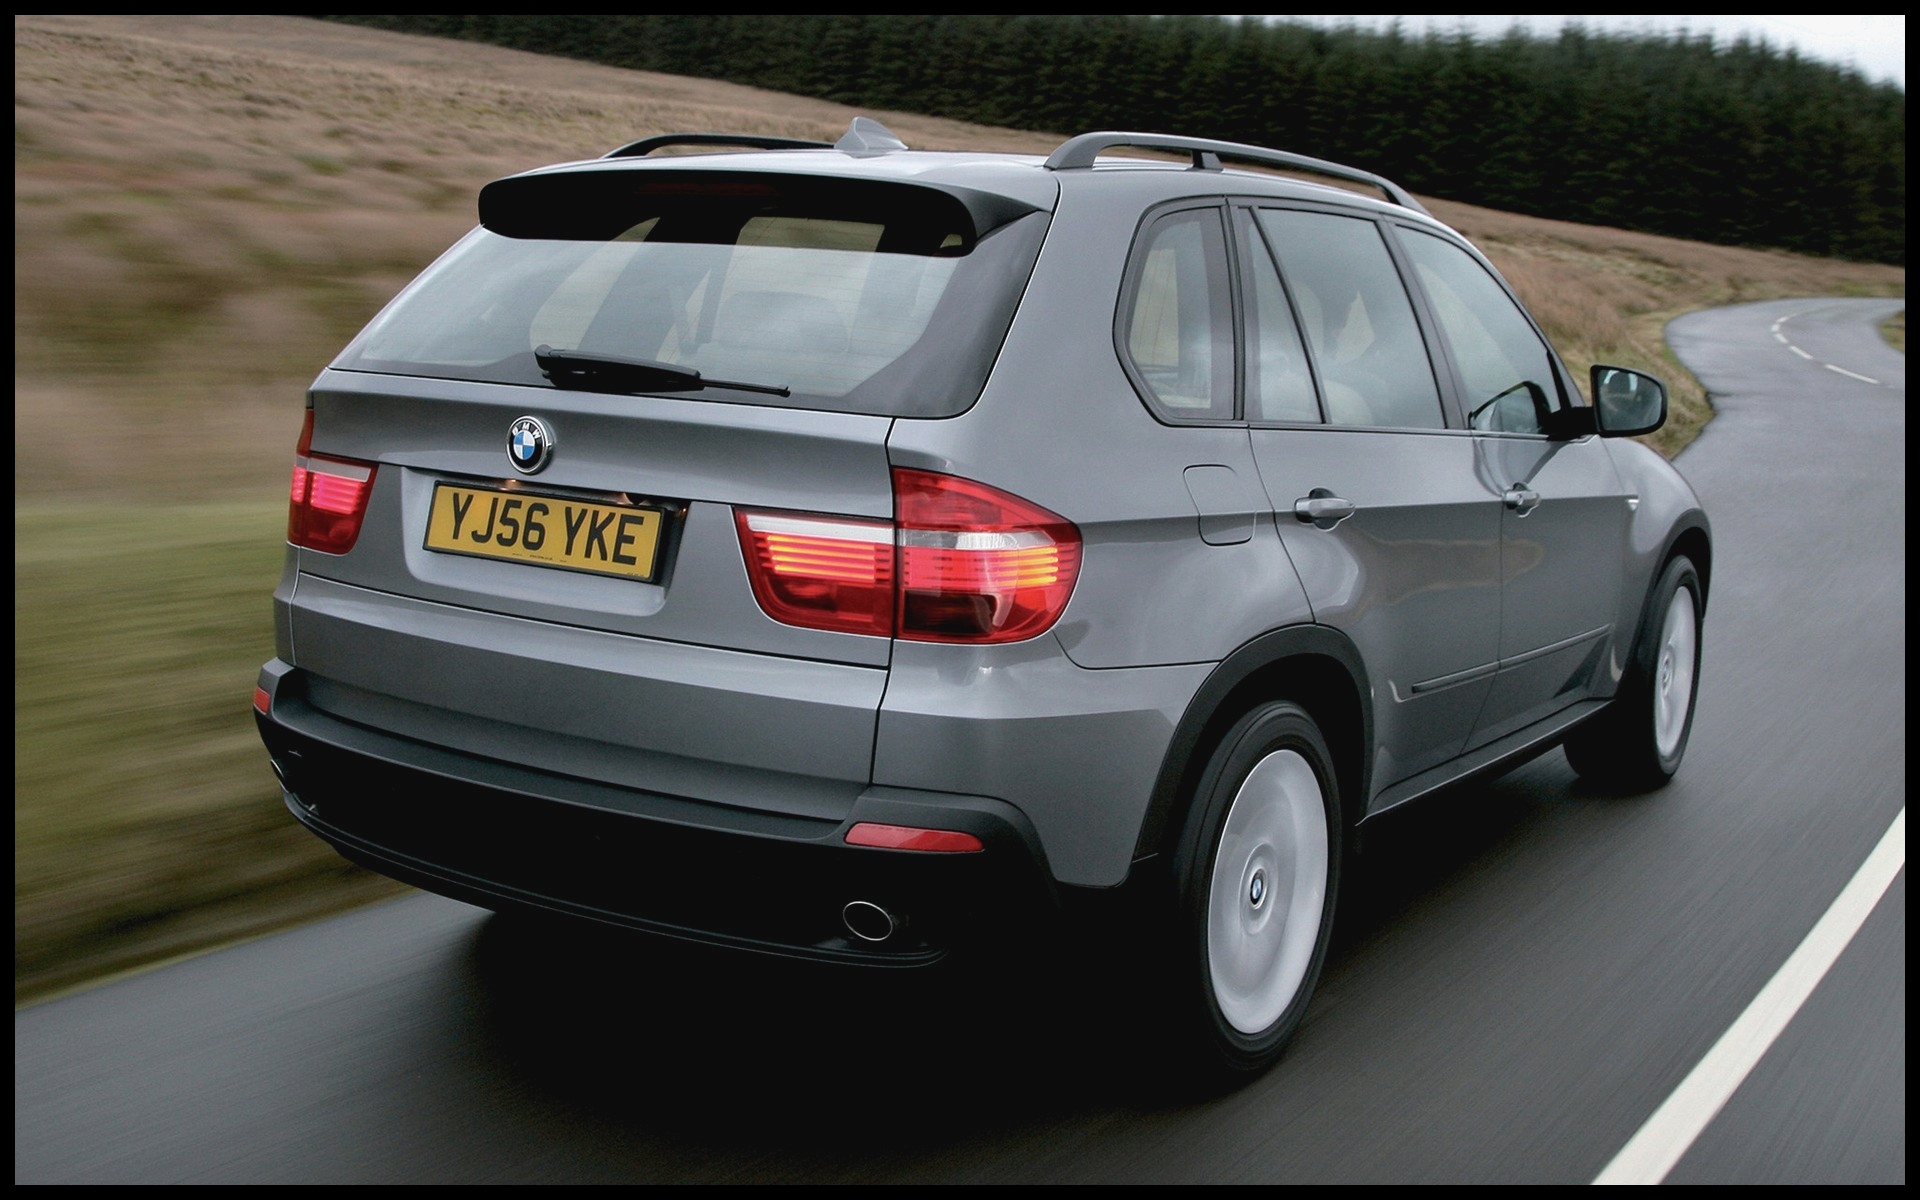 Car Image In Hd New Stylish Bmw X5 3 0d 2007 Uk Wallpapers And Hd New Car Wallpaper Wide